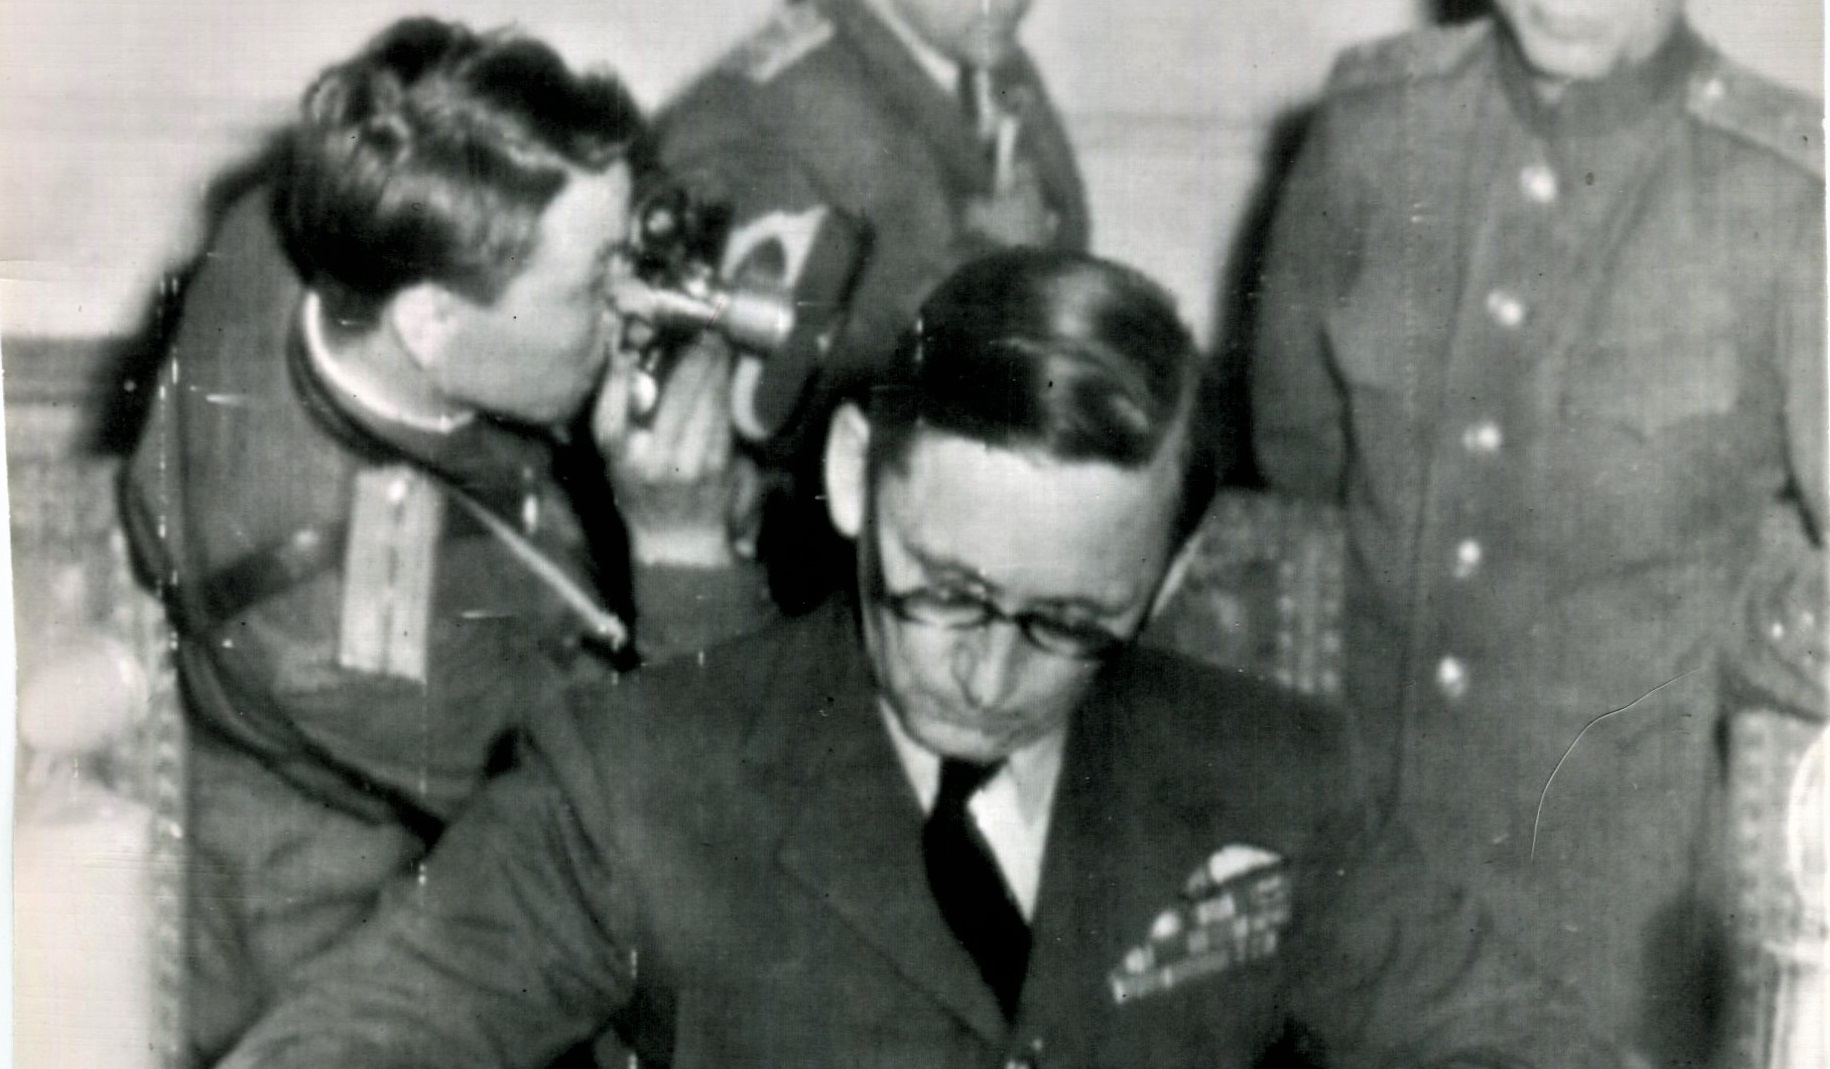 The RAF's Sir Arthur Tedder and the German Surrender